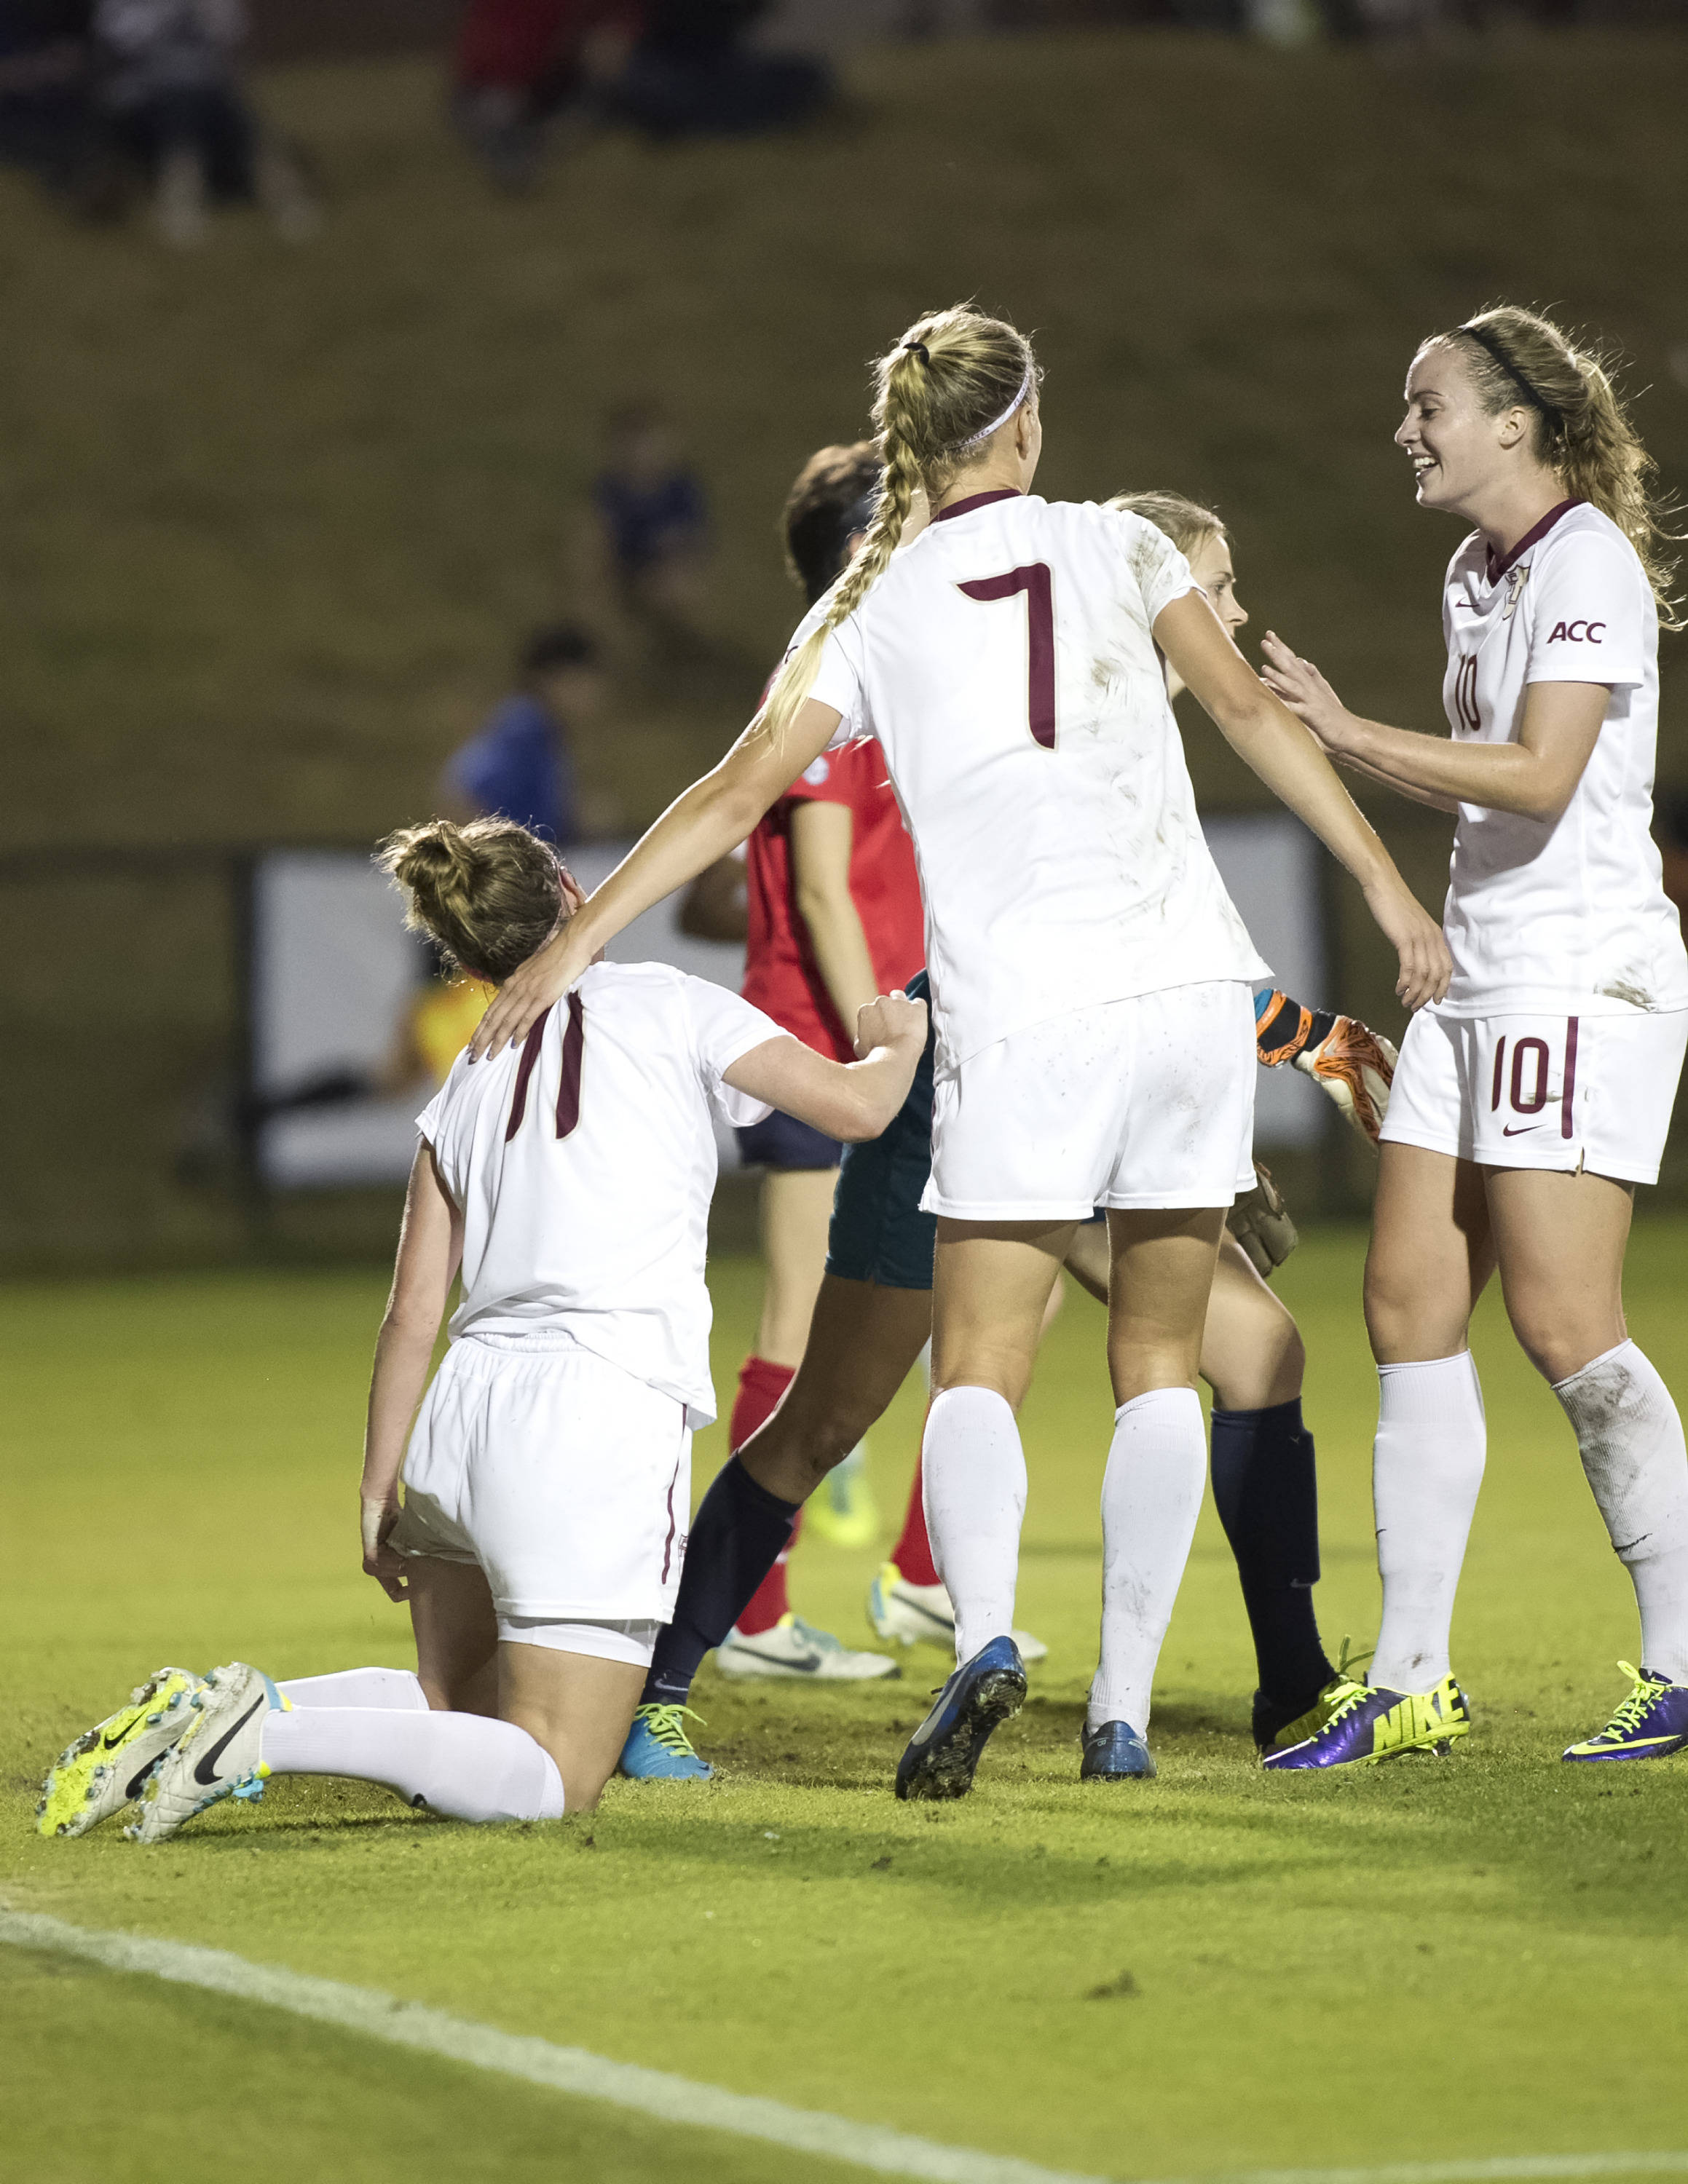 Celebrating Isabella Schmid's (11) goal. FSU vs Ole Miss, 11-17-13, 2nd round NCAA Tournament (Photo by Steve Musco)